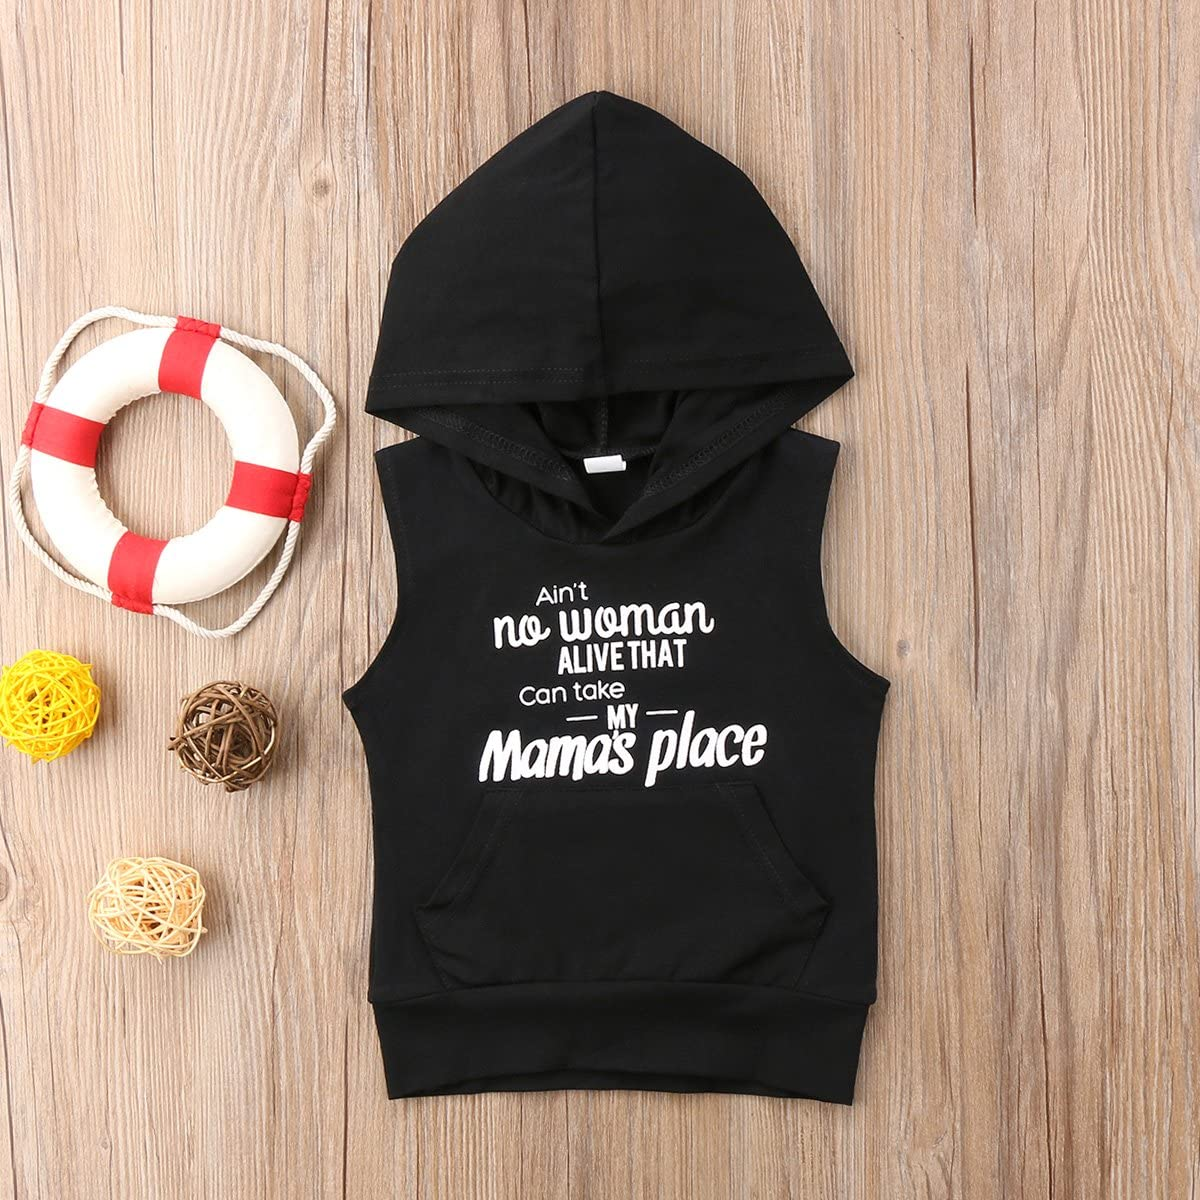 Annvivi Newborn Baby Boys Aint No Women Alive That Can Take My Mamas Place Letter Print Sleeveless Hoodie Shirt Top